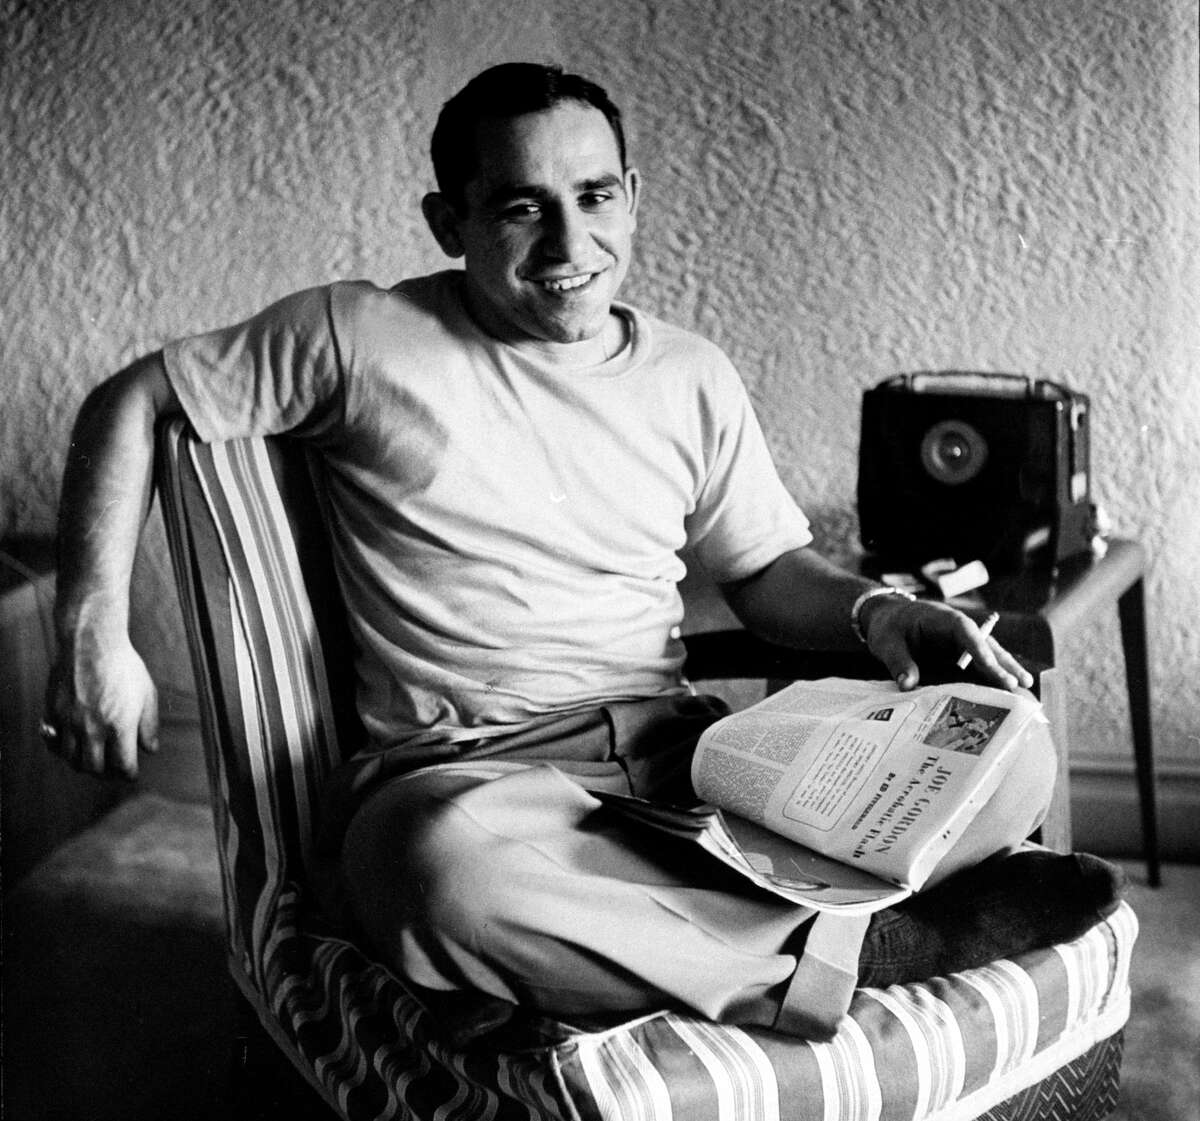 Baseball player Yogi Berra relaxing at home in the 1950s.